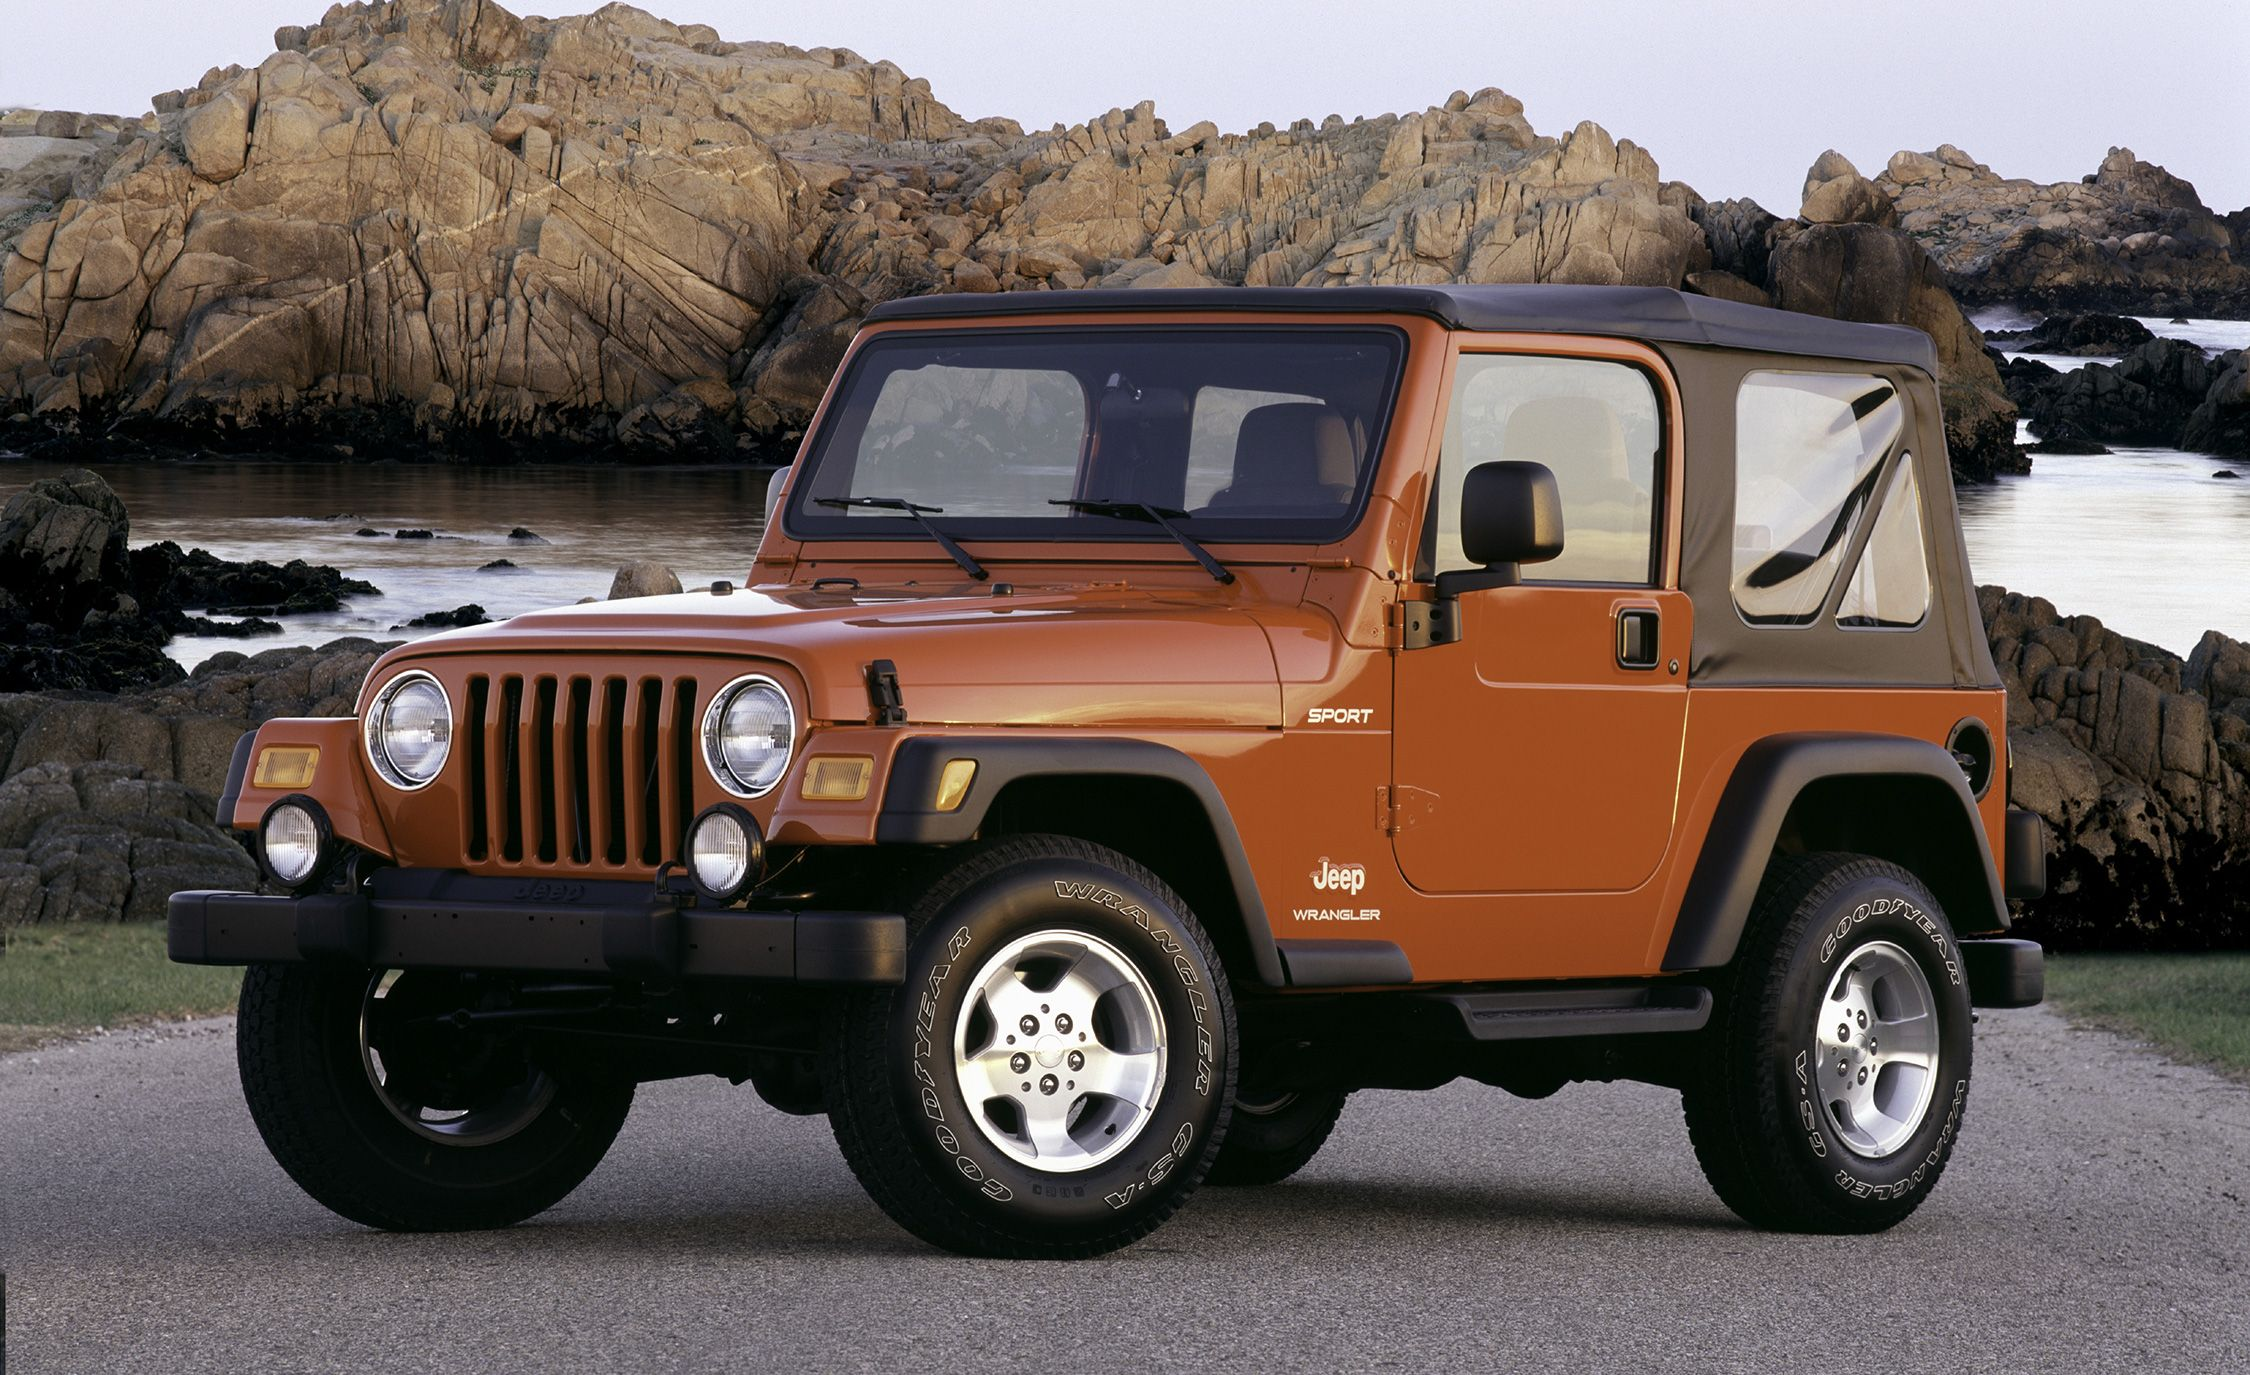 The Complete Visual History Of Jeep Wrangler From 1986 To Present 2003 4 Liter Engine Diagram